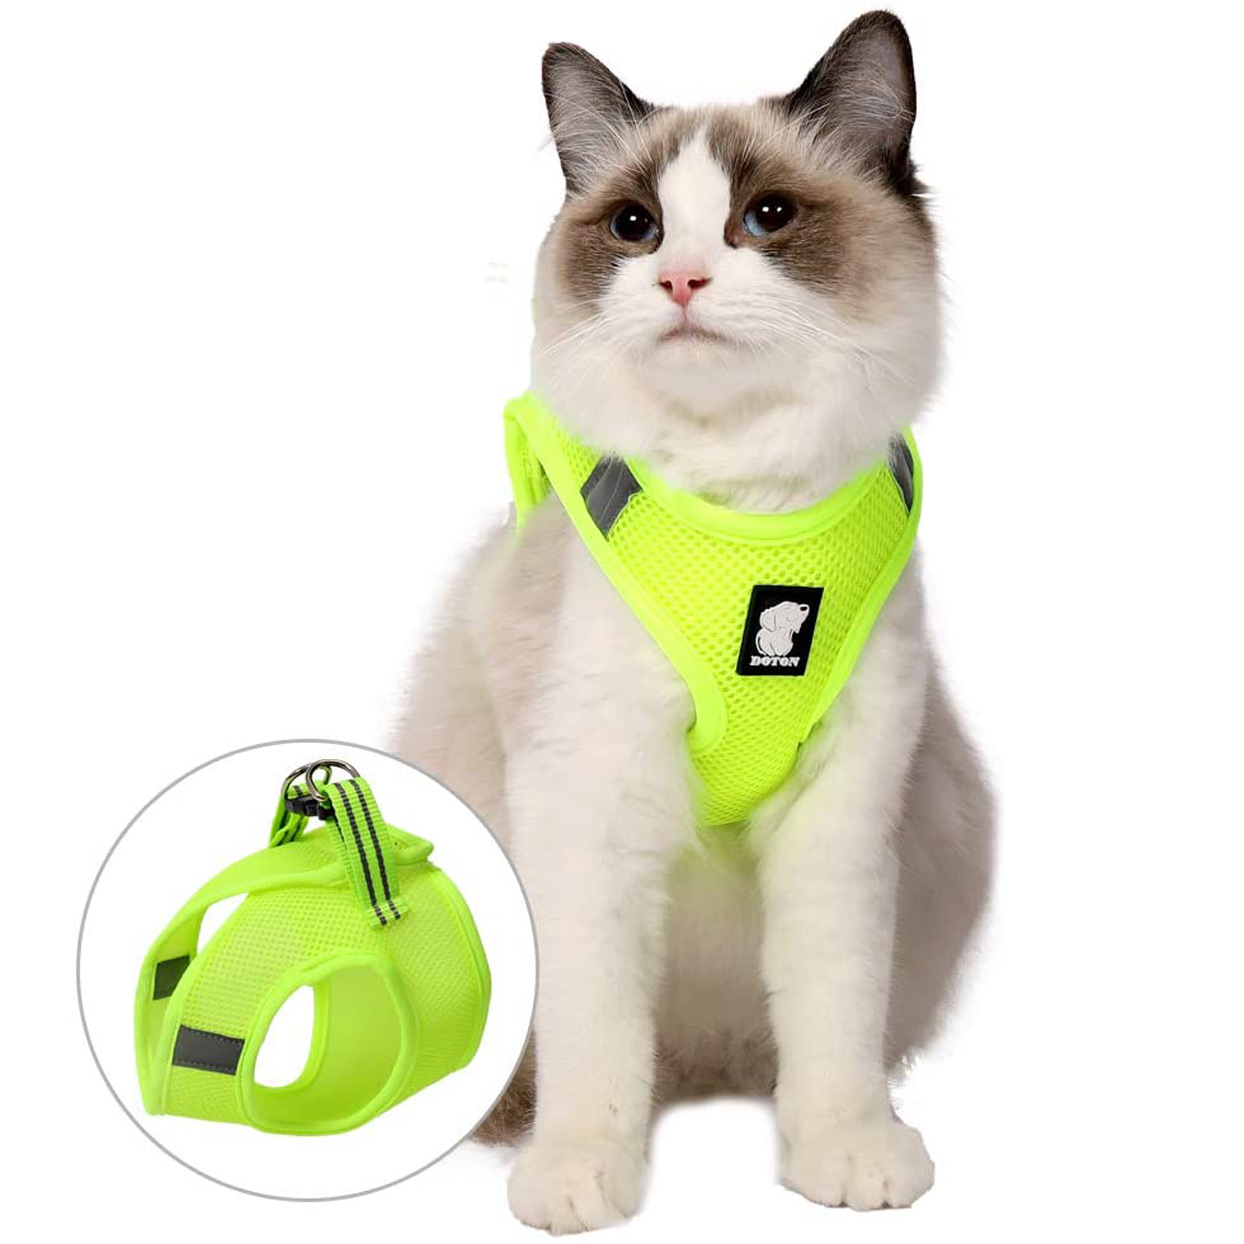 fdoylclc-cat-chest-adjustable-harness